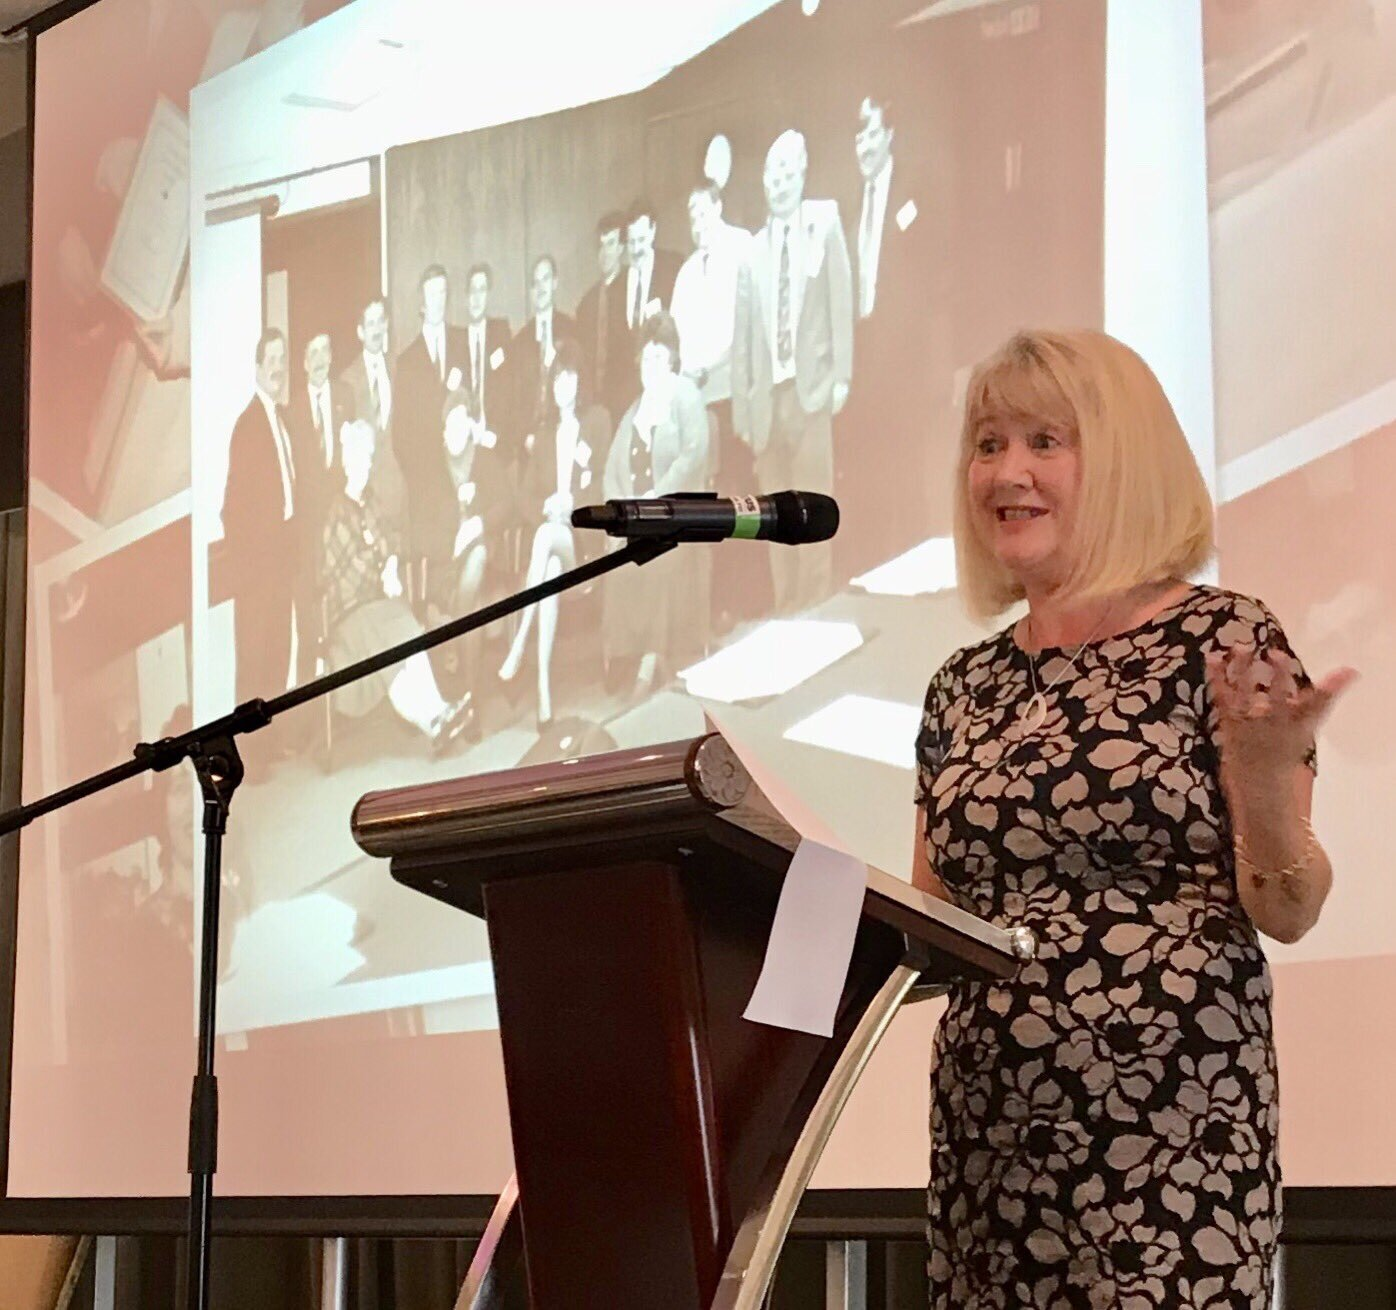 Lorraine Campbell, Chair of Supporting Commiunities, speaks about the 20 year history of the Annual Communitiy Conference.